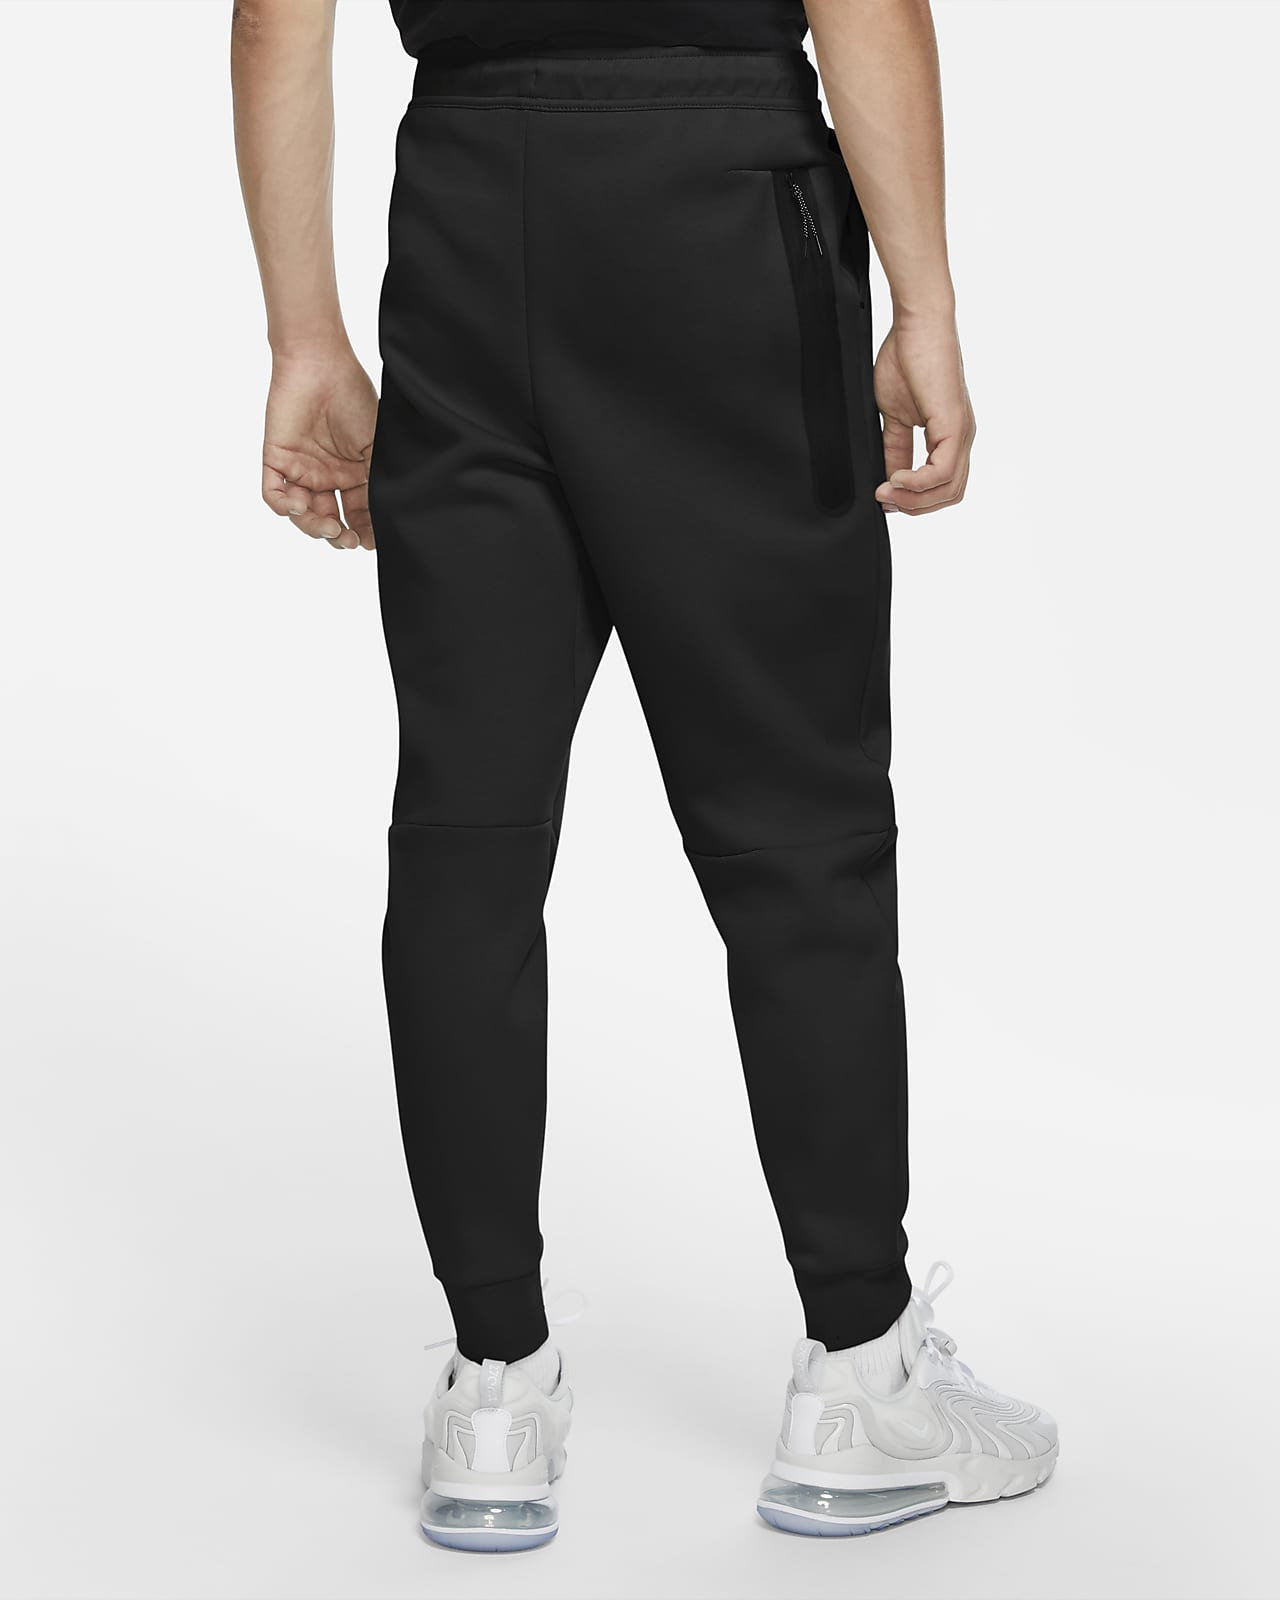 غير طبيعى بحرص ملفت للانتباه Pantalon Nike Tech Fleece Hombre Psidiagnosticins Com